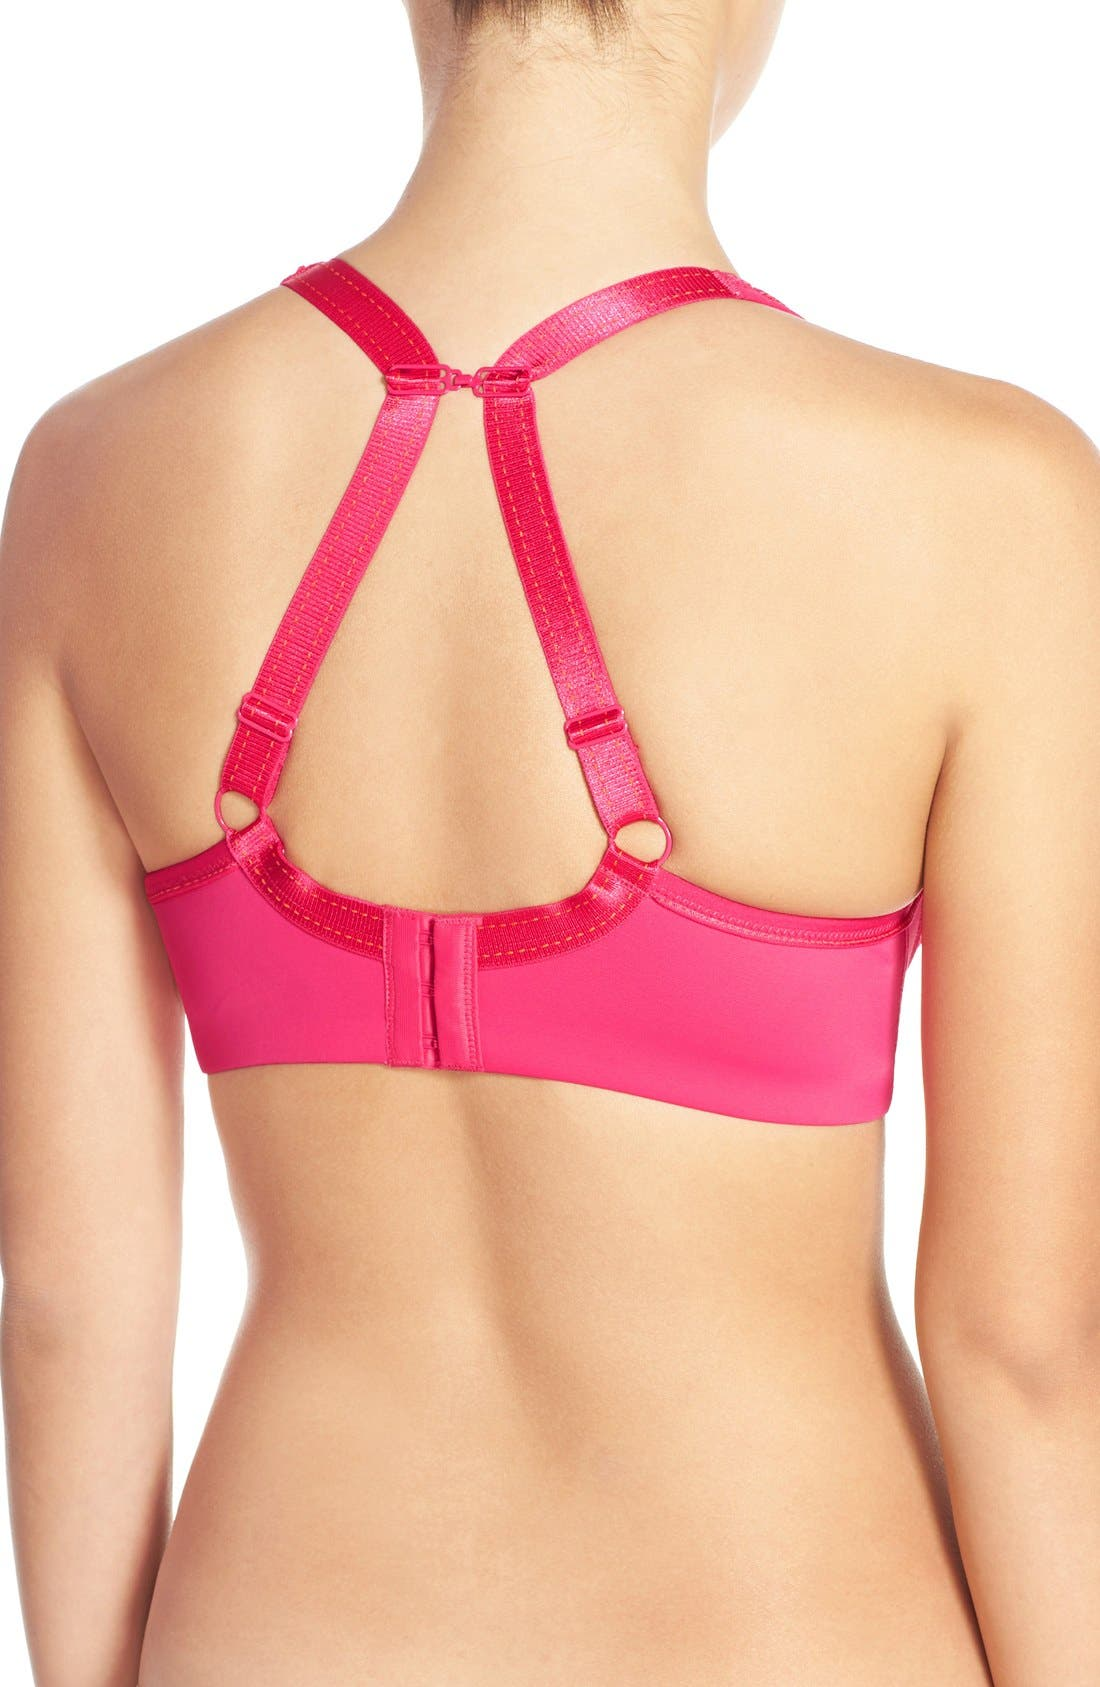 Underwire Sports Bra,                             Alternate thumbnail 19, color,